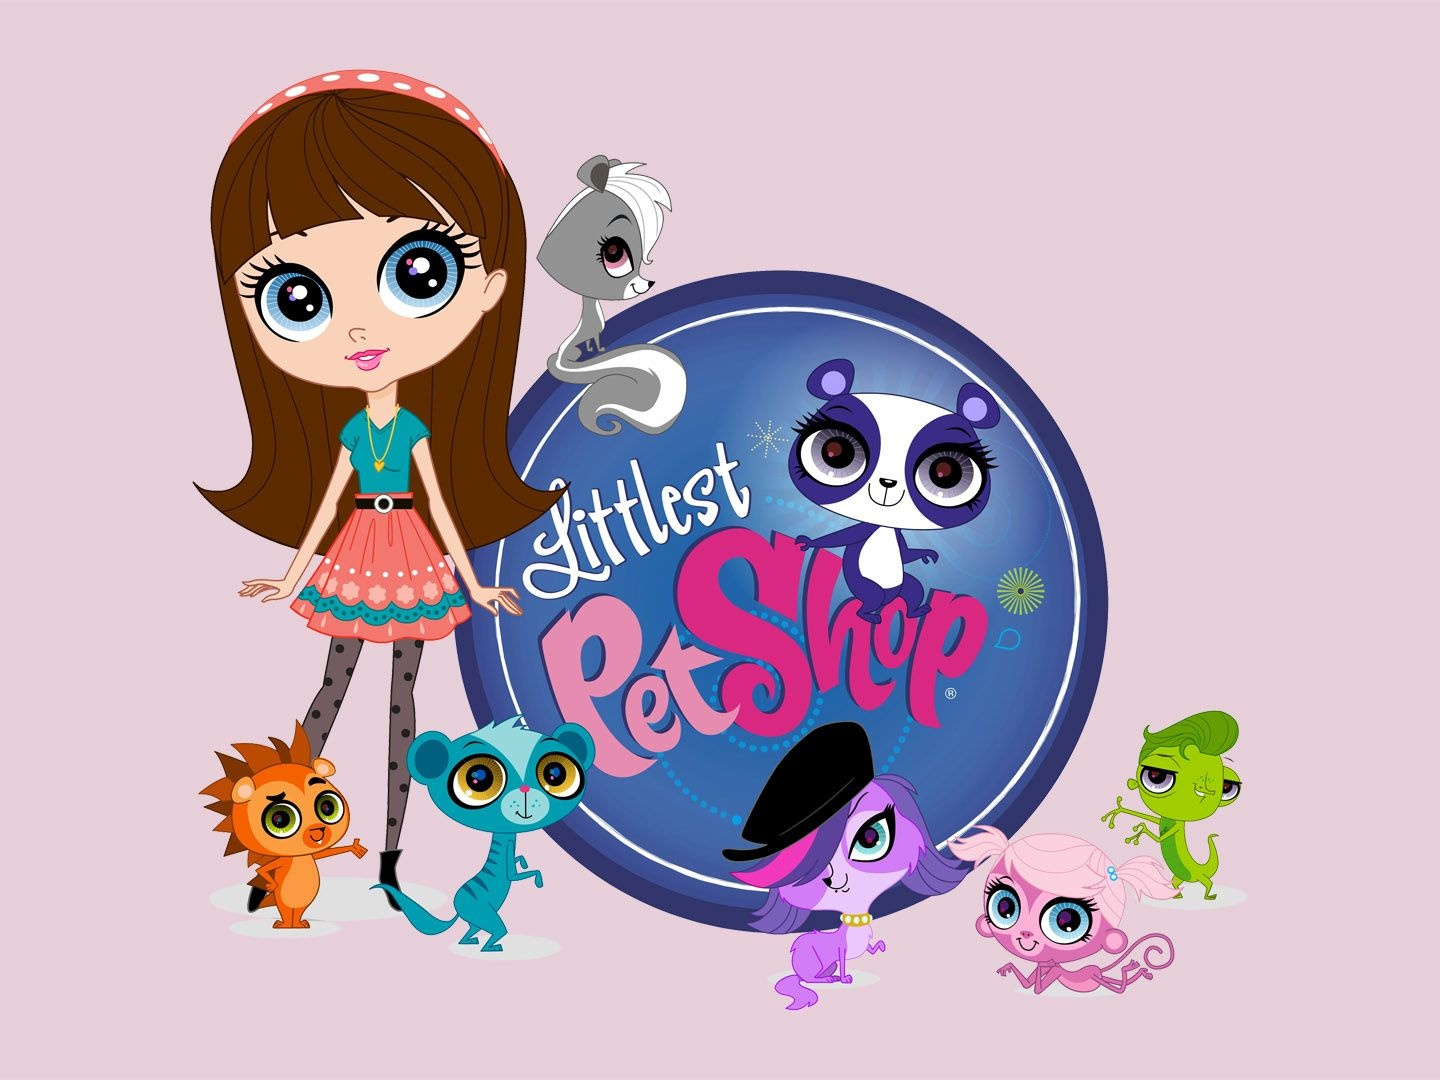 Pictures Of Littlest Pet Shops | Littlest Pet Shop Tv Show Hub - Littlest Pet Shop Invitations Printable Free